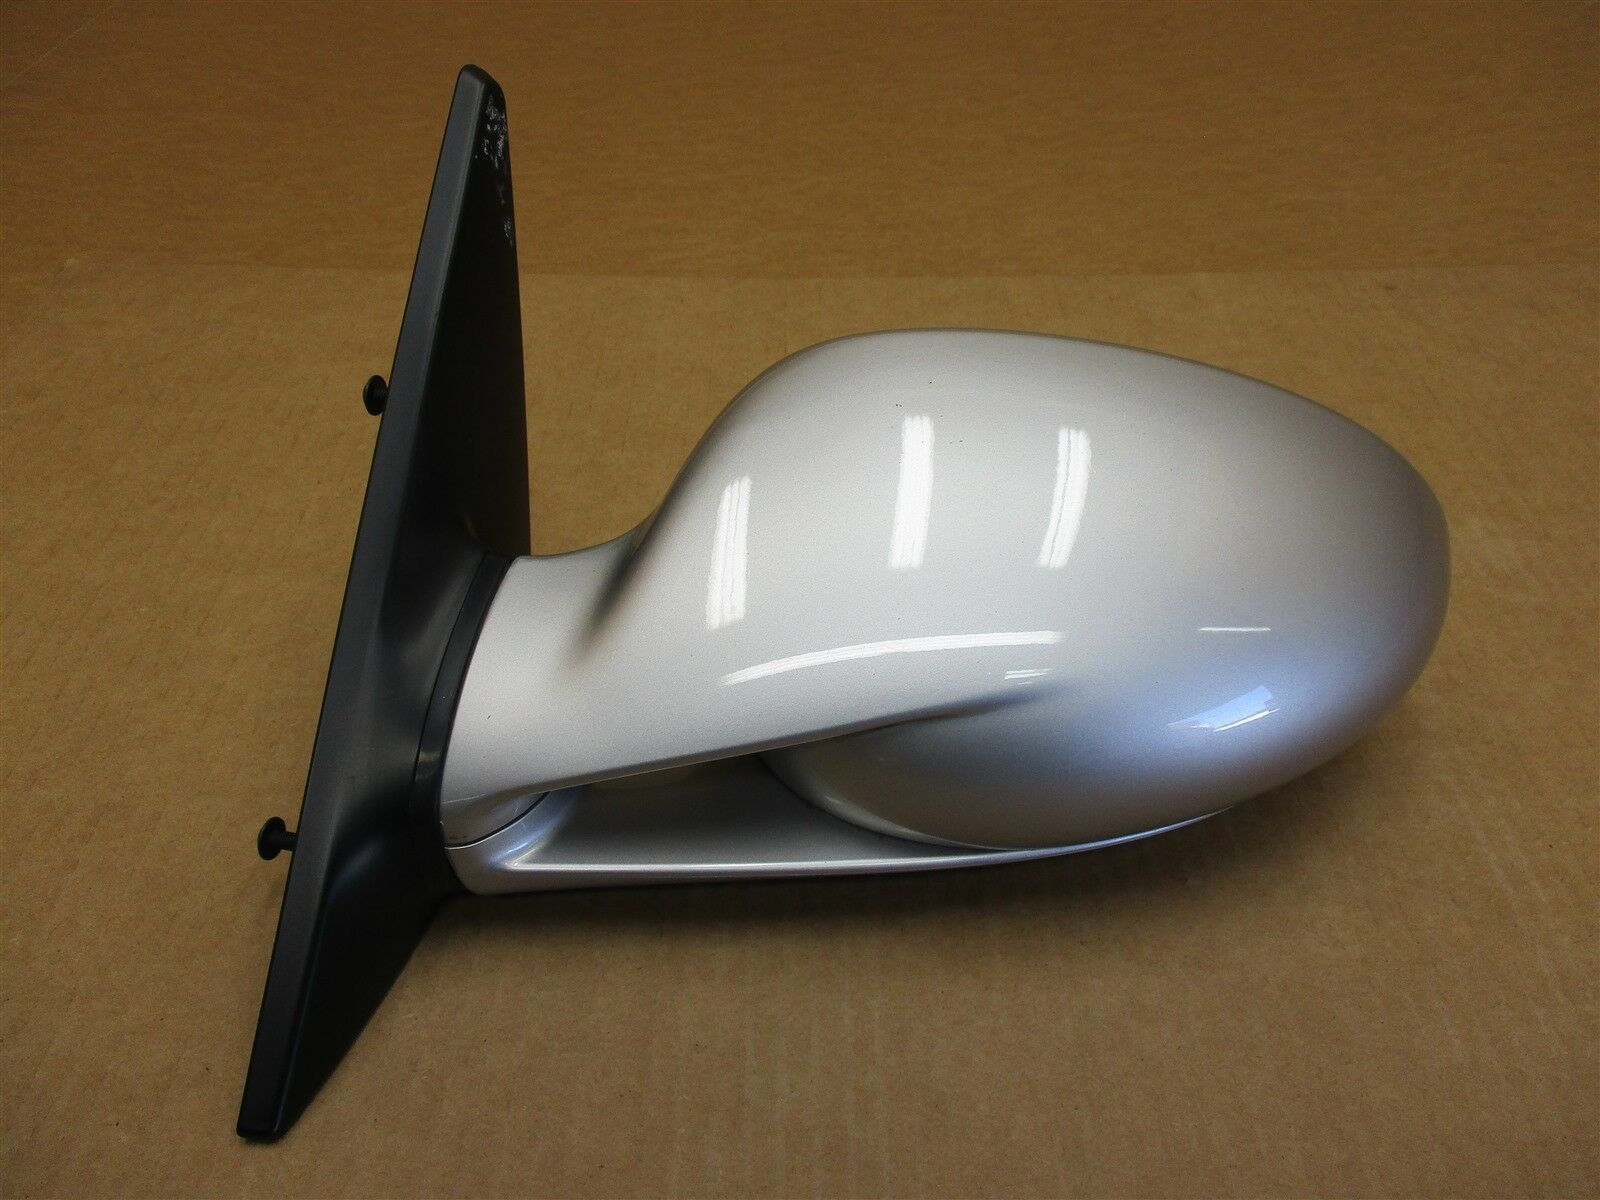 06 Cayman S RWD Porsche 987 L EXTERIOR REAR VIEW MIRROR HOUSING DRIVER 57,607